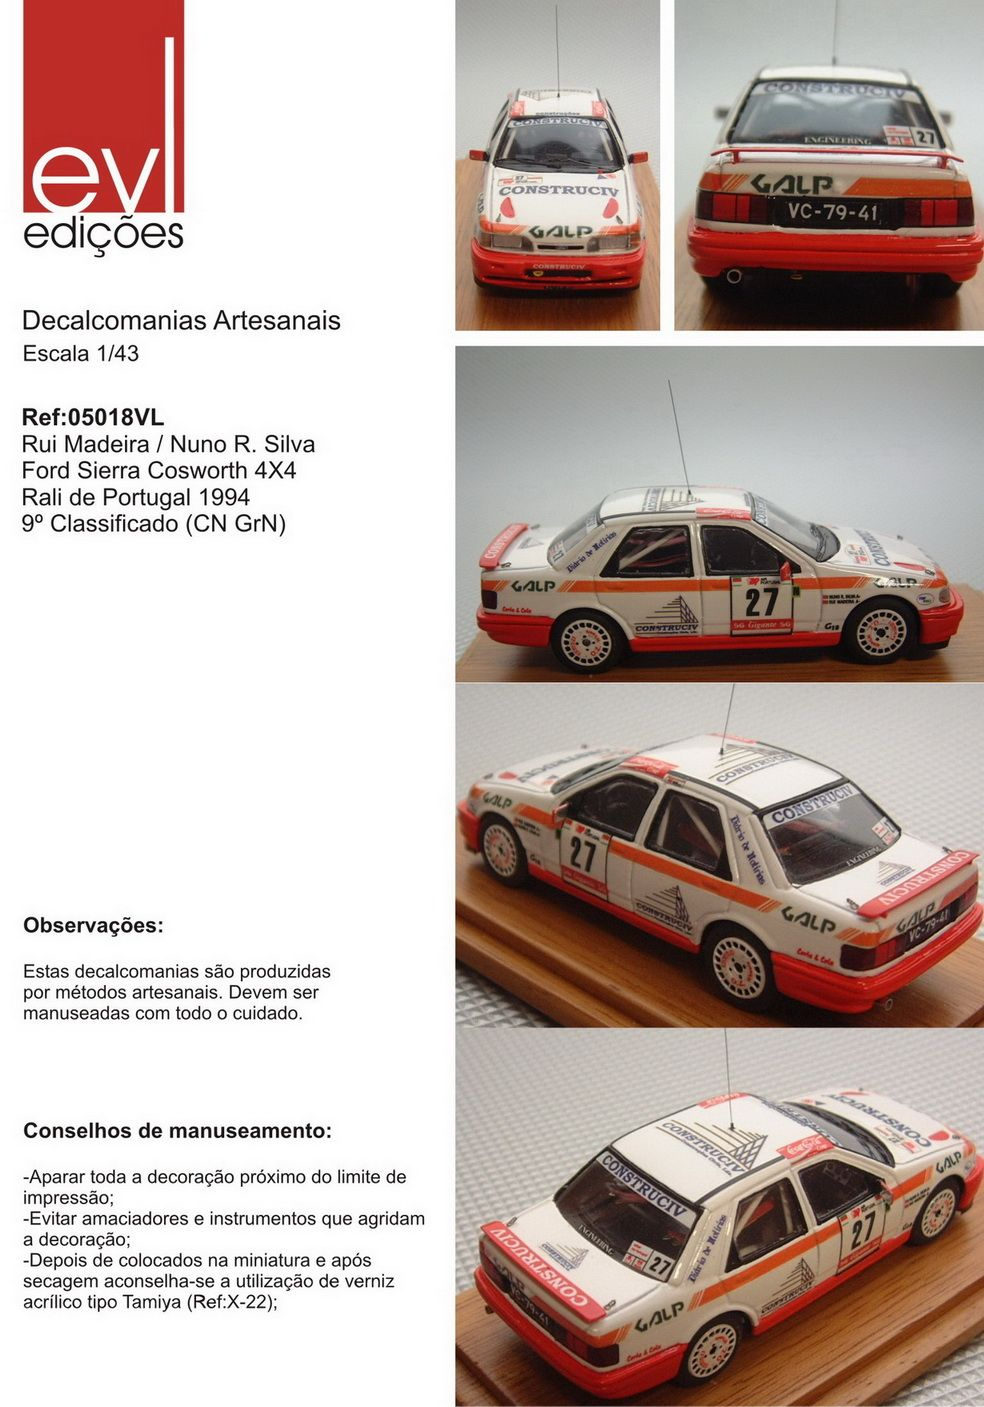 Ford Sierra Cosworth (4x4)